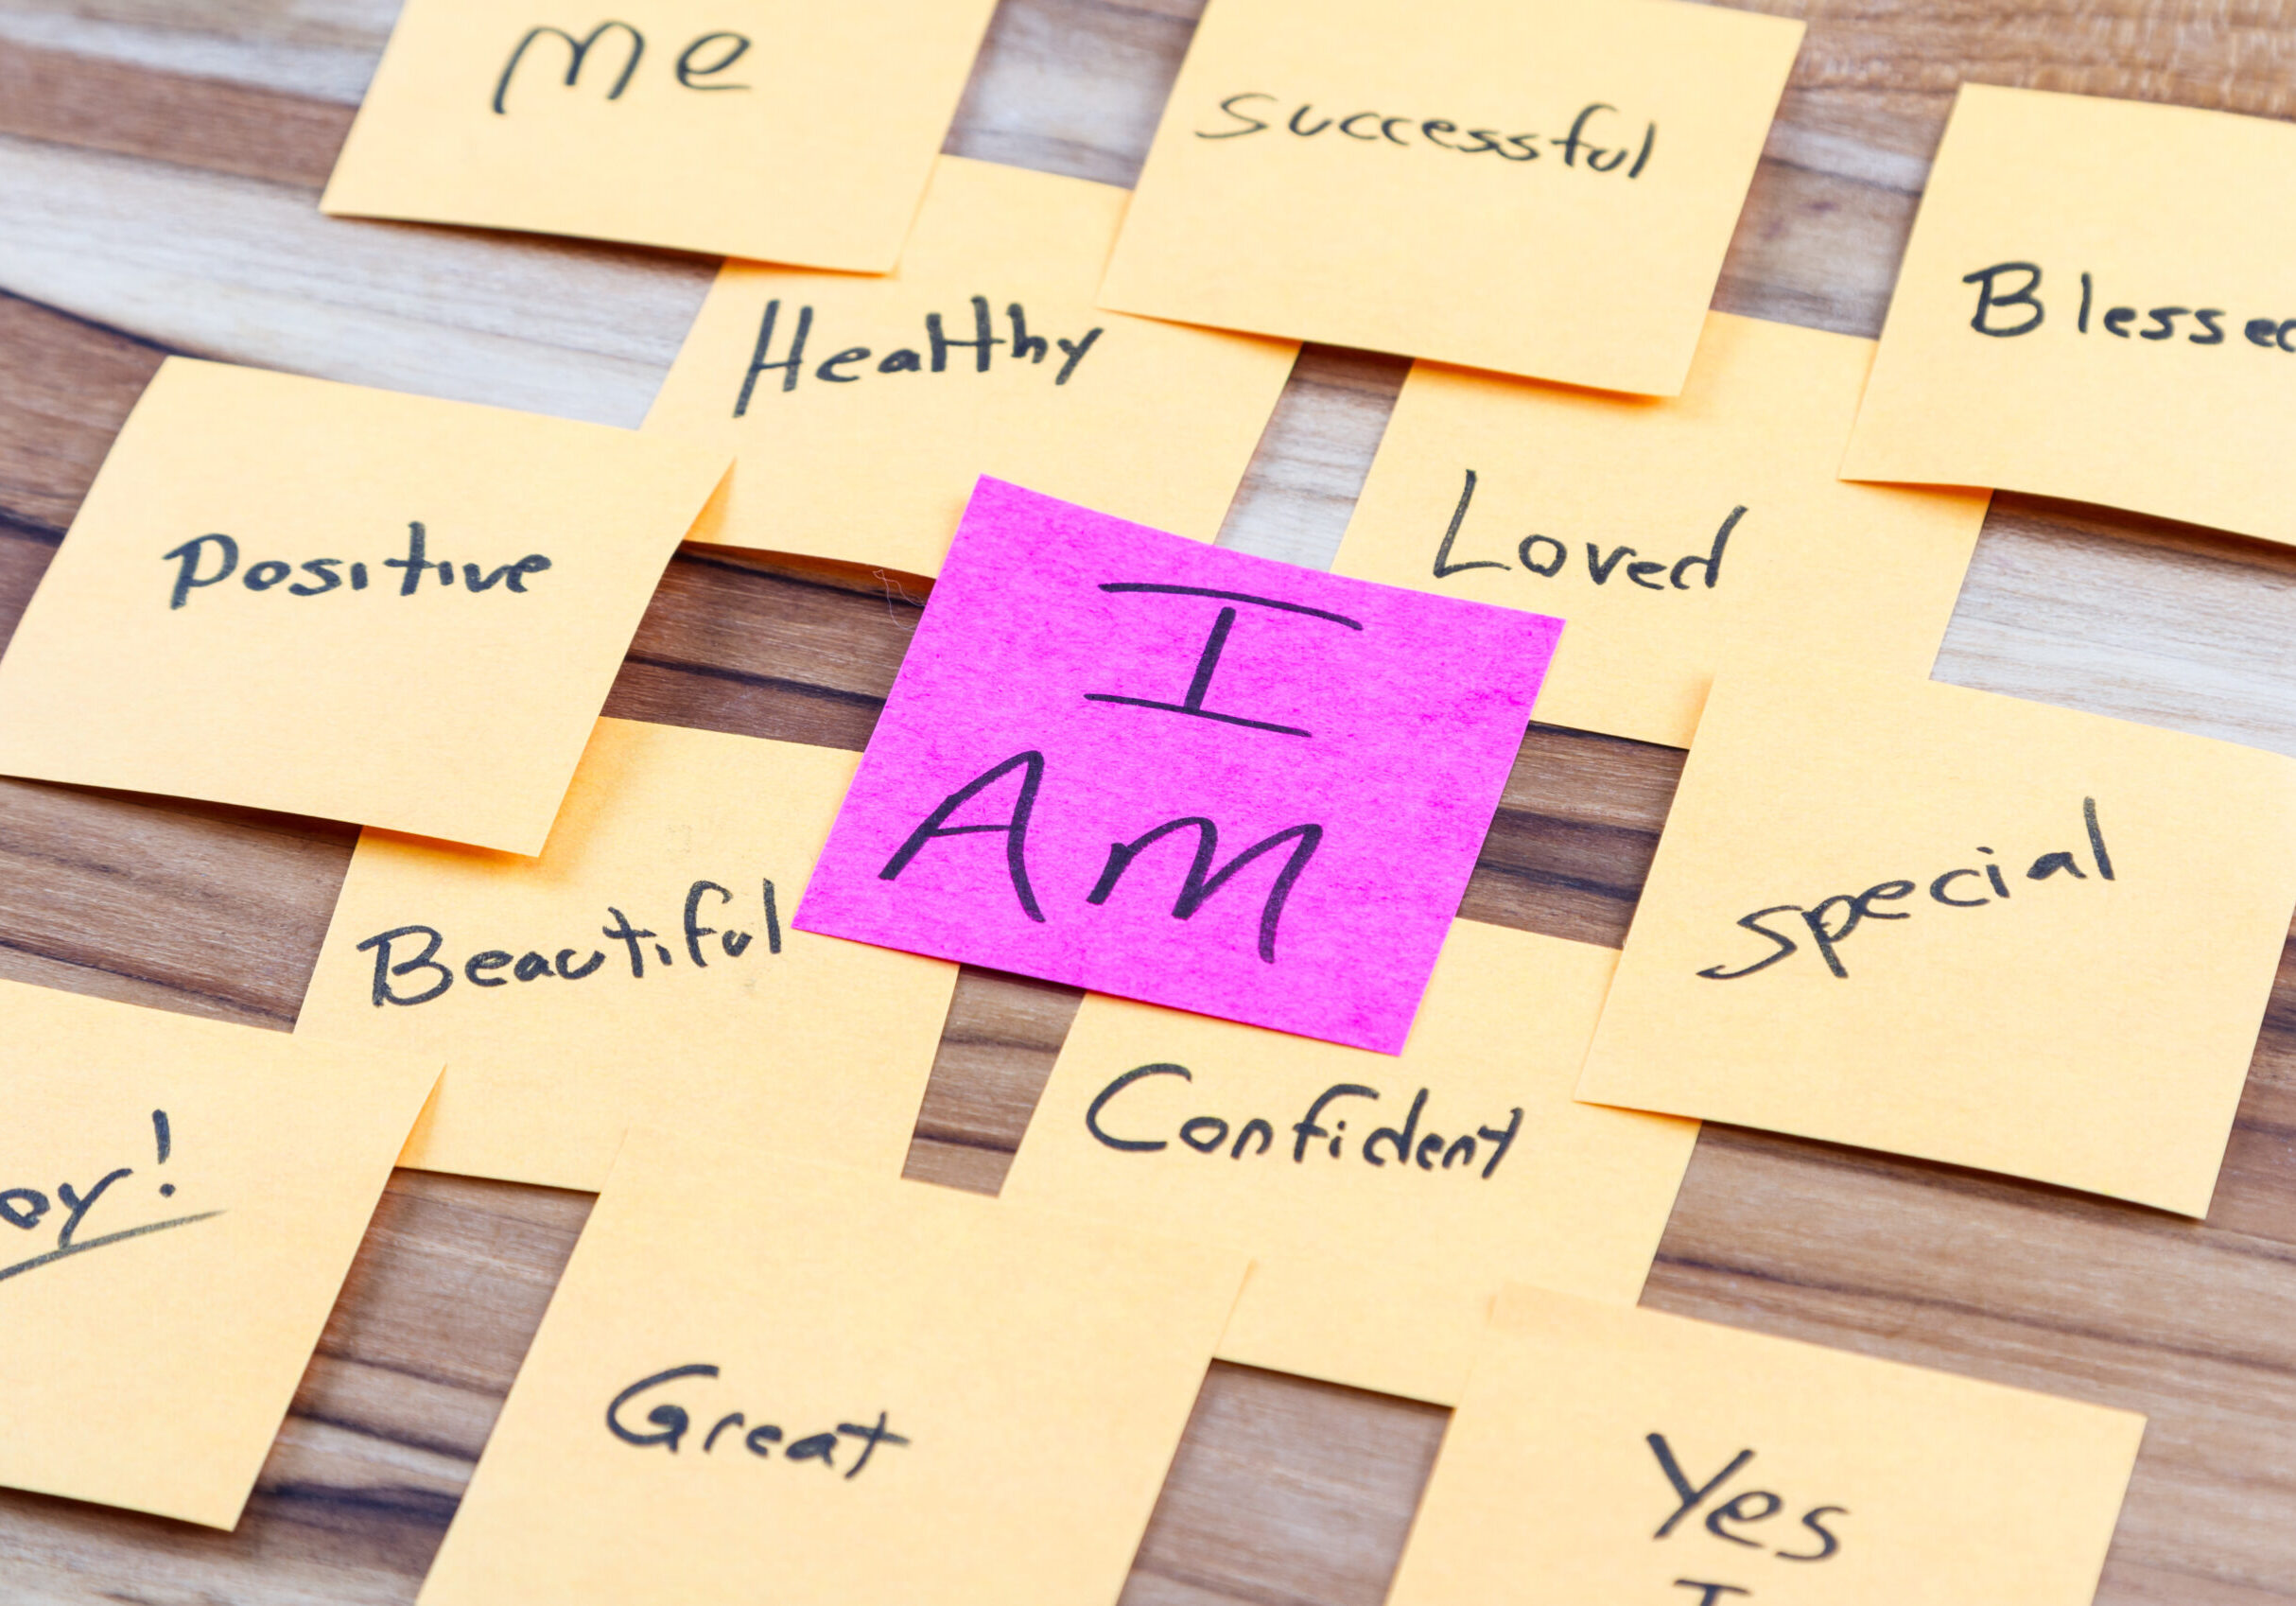 very powerful self help concept using positive messages and a I am floating above all the positive thoughts